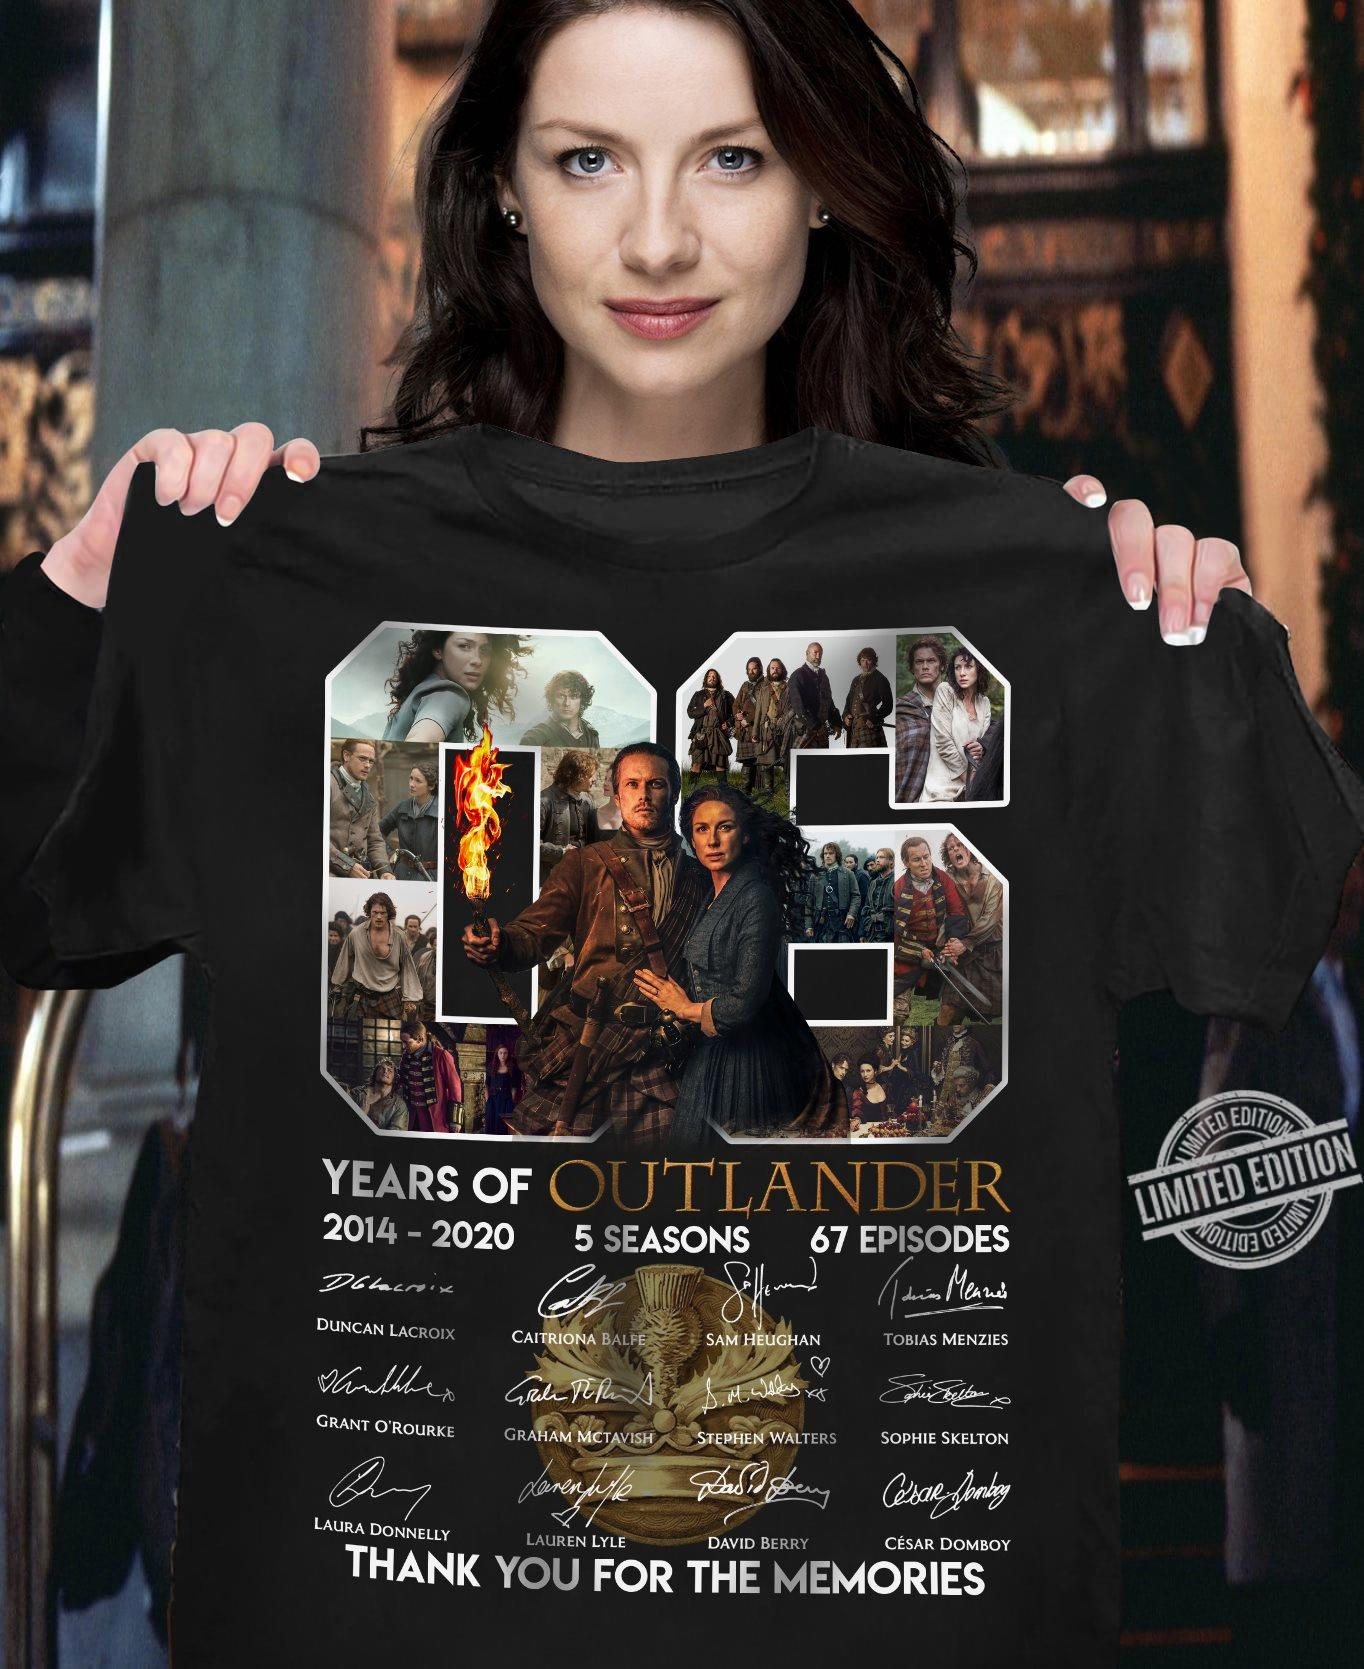 06 Years Of Outlander Members Signature And Thank You For The Memories Shirt